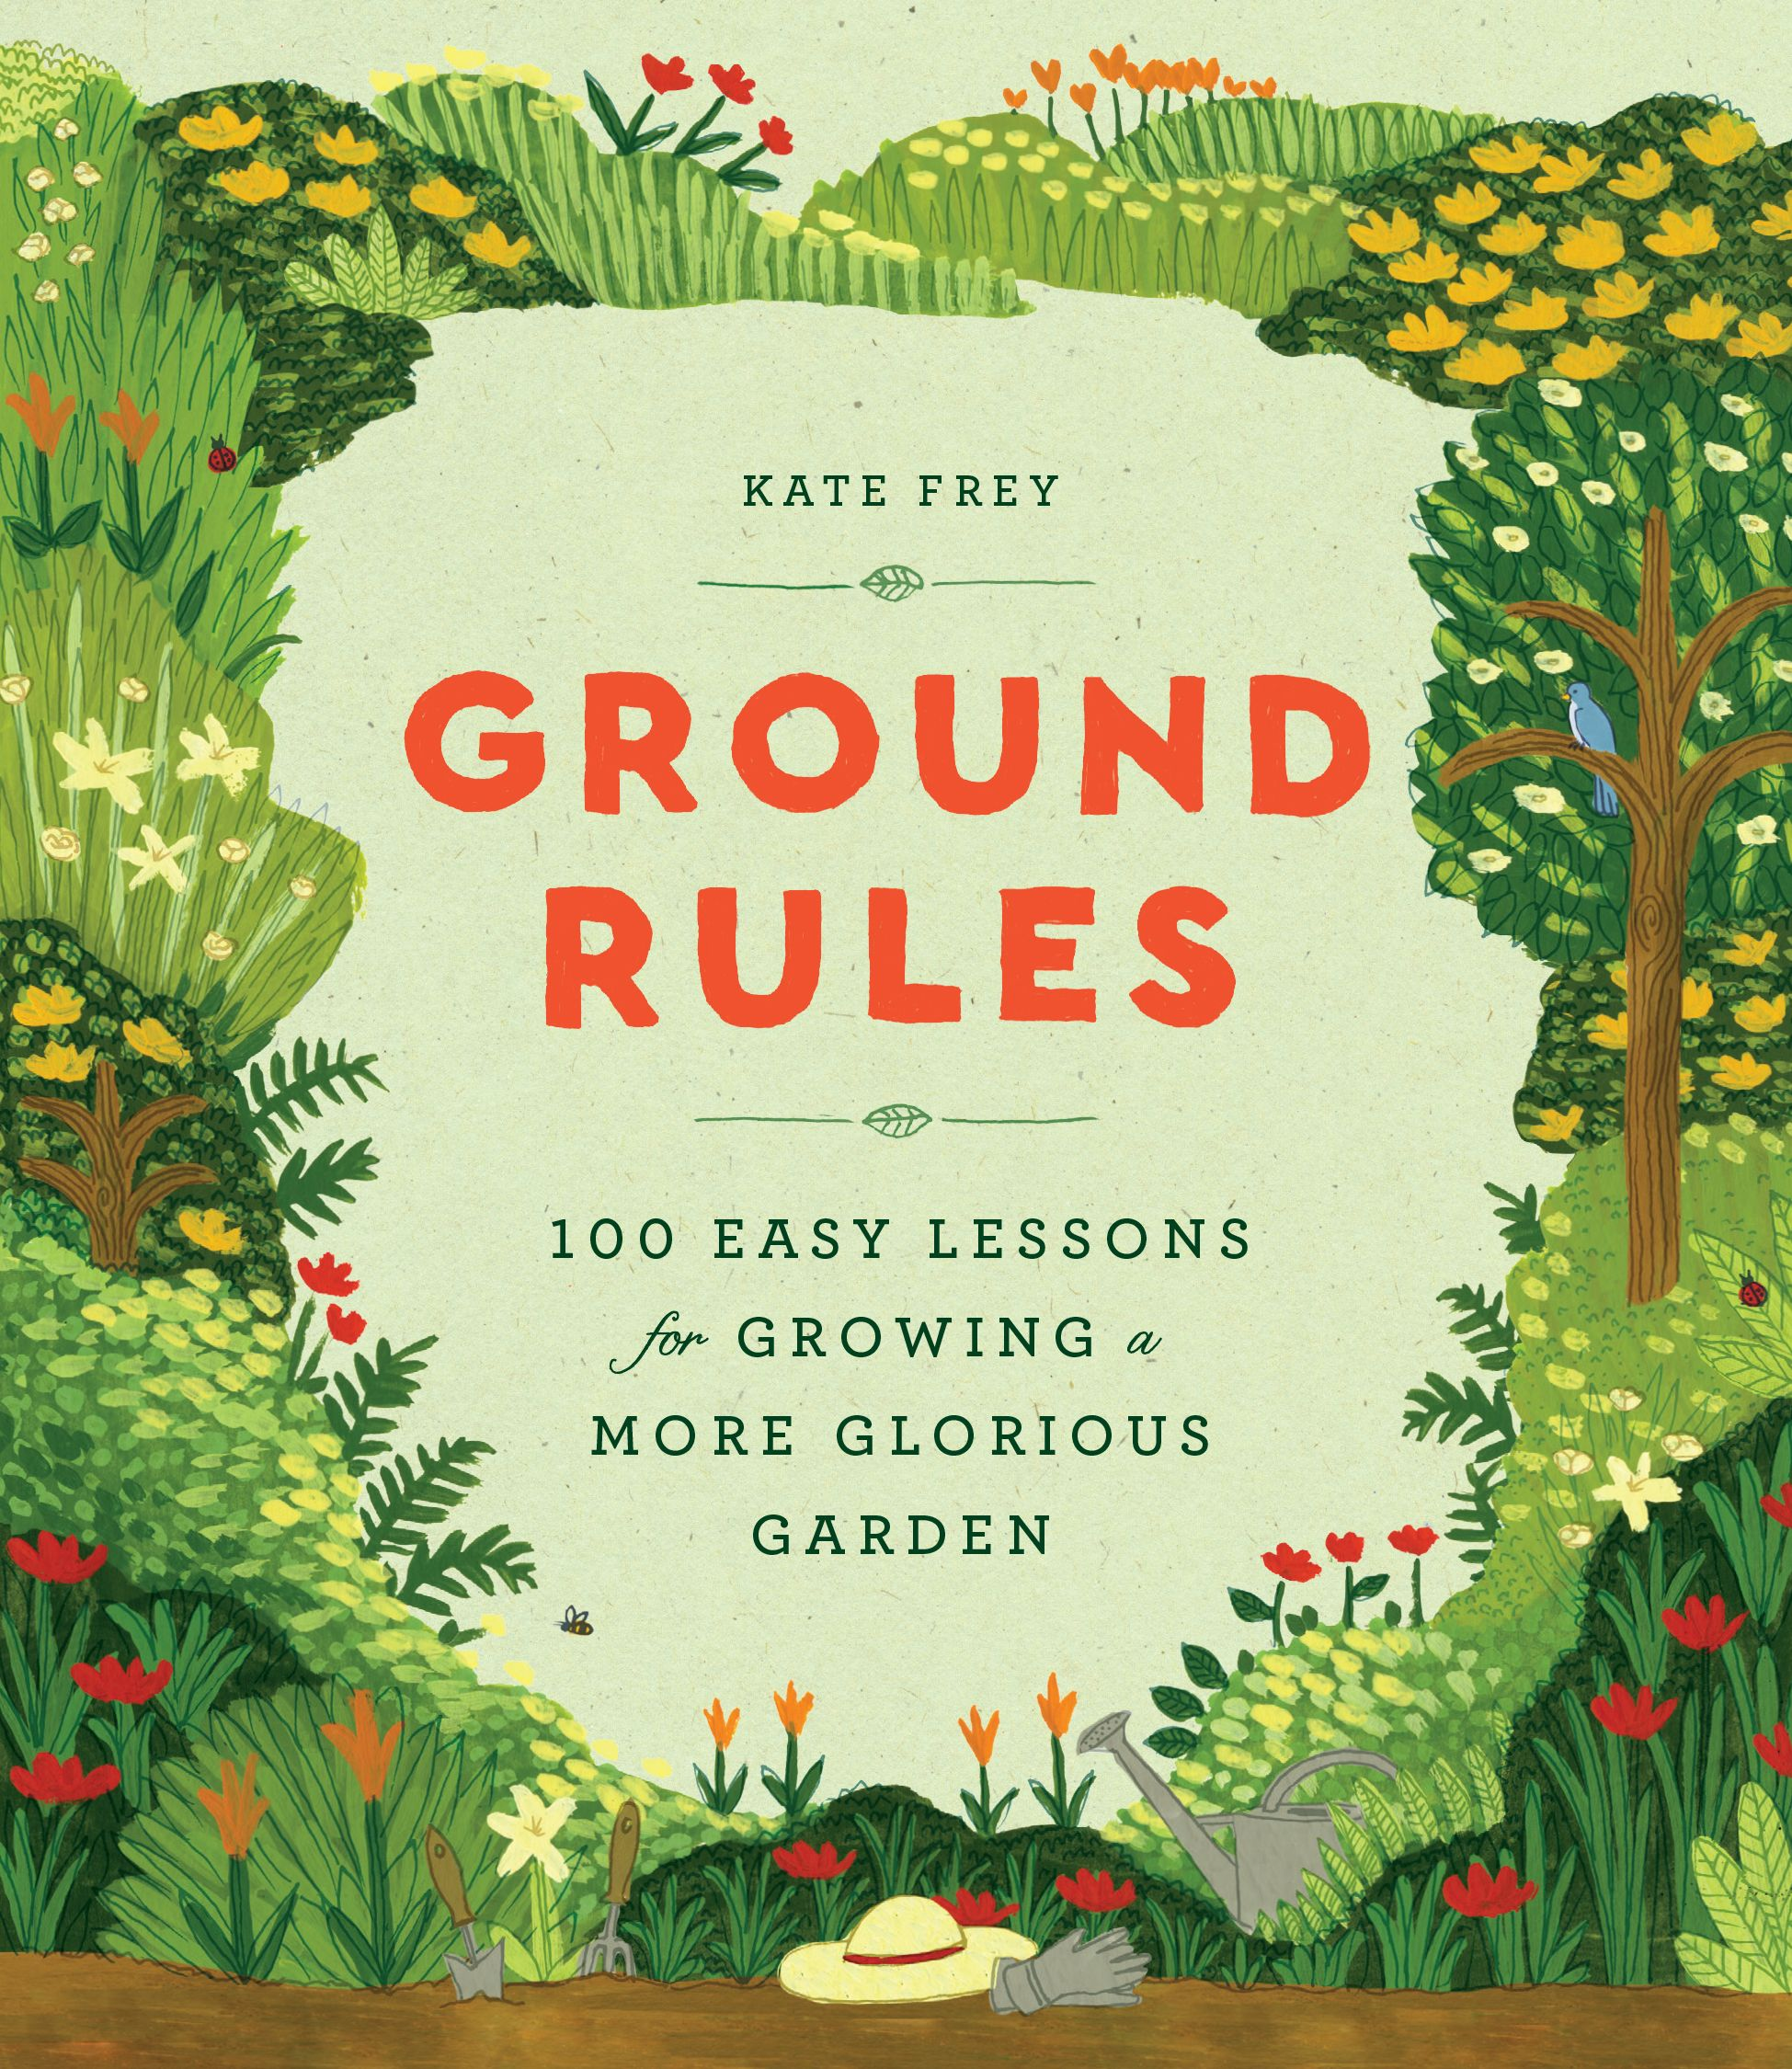 Ground Rules | Easy lessons, Design rules, Garden ...